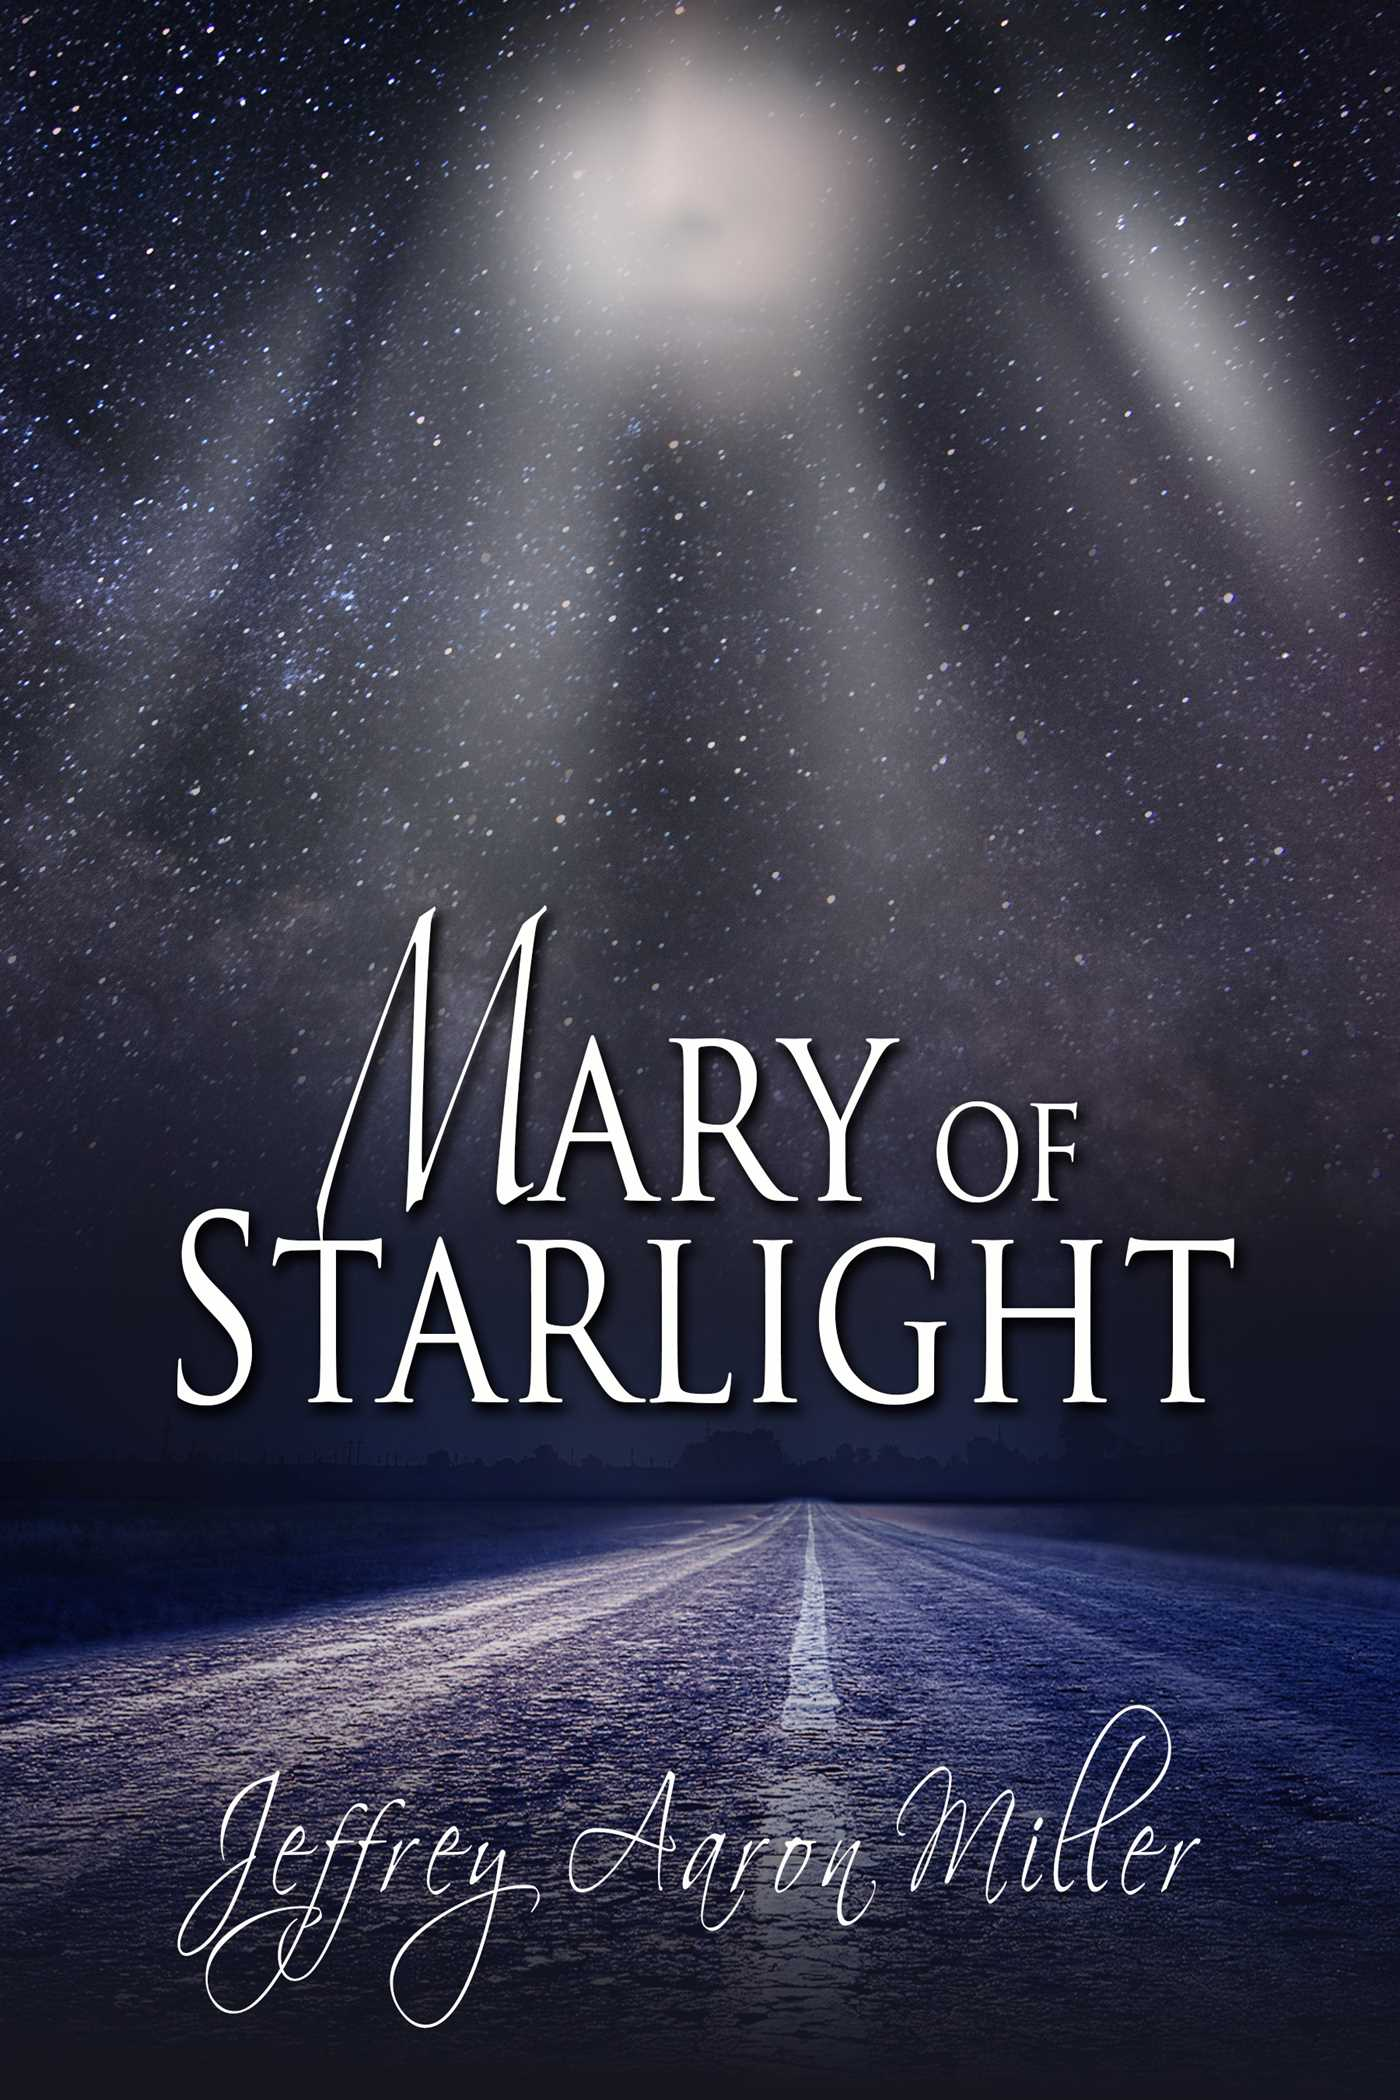 Mary of the starlight 9781611607895 hr